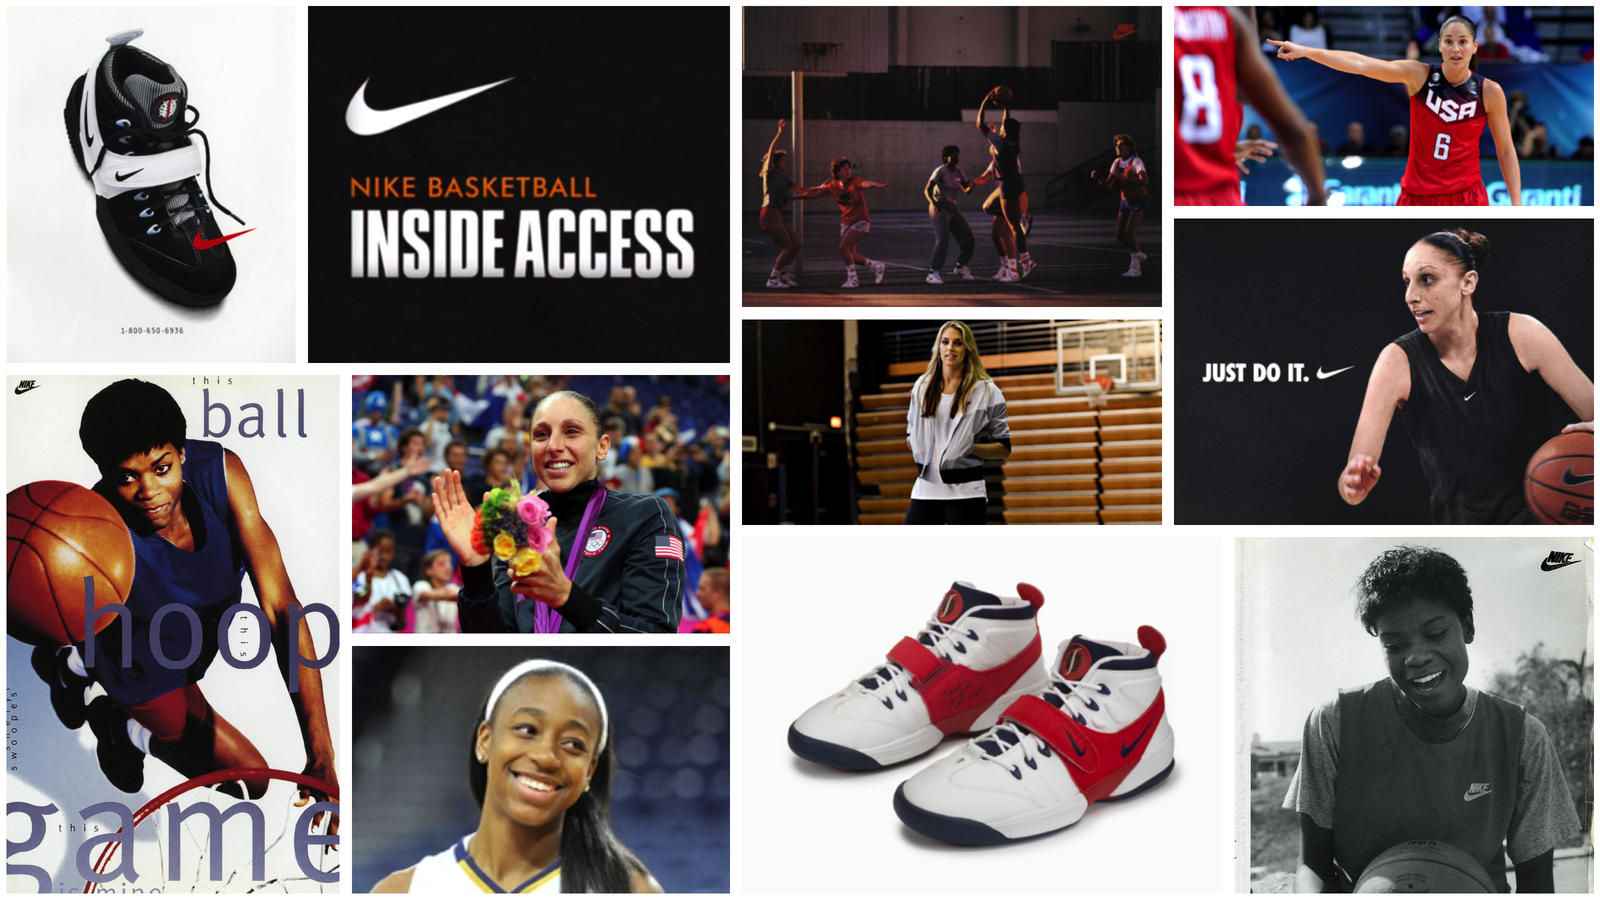 Nike basketball inside access collage hd 1600